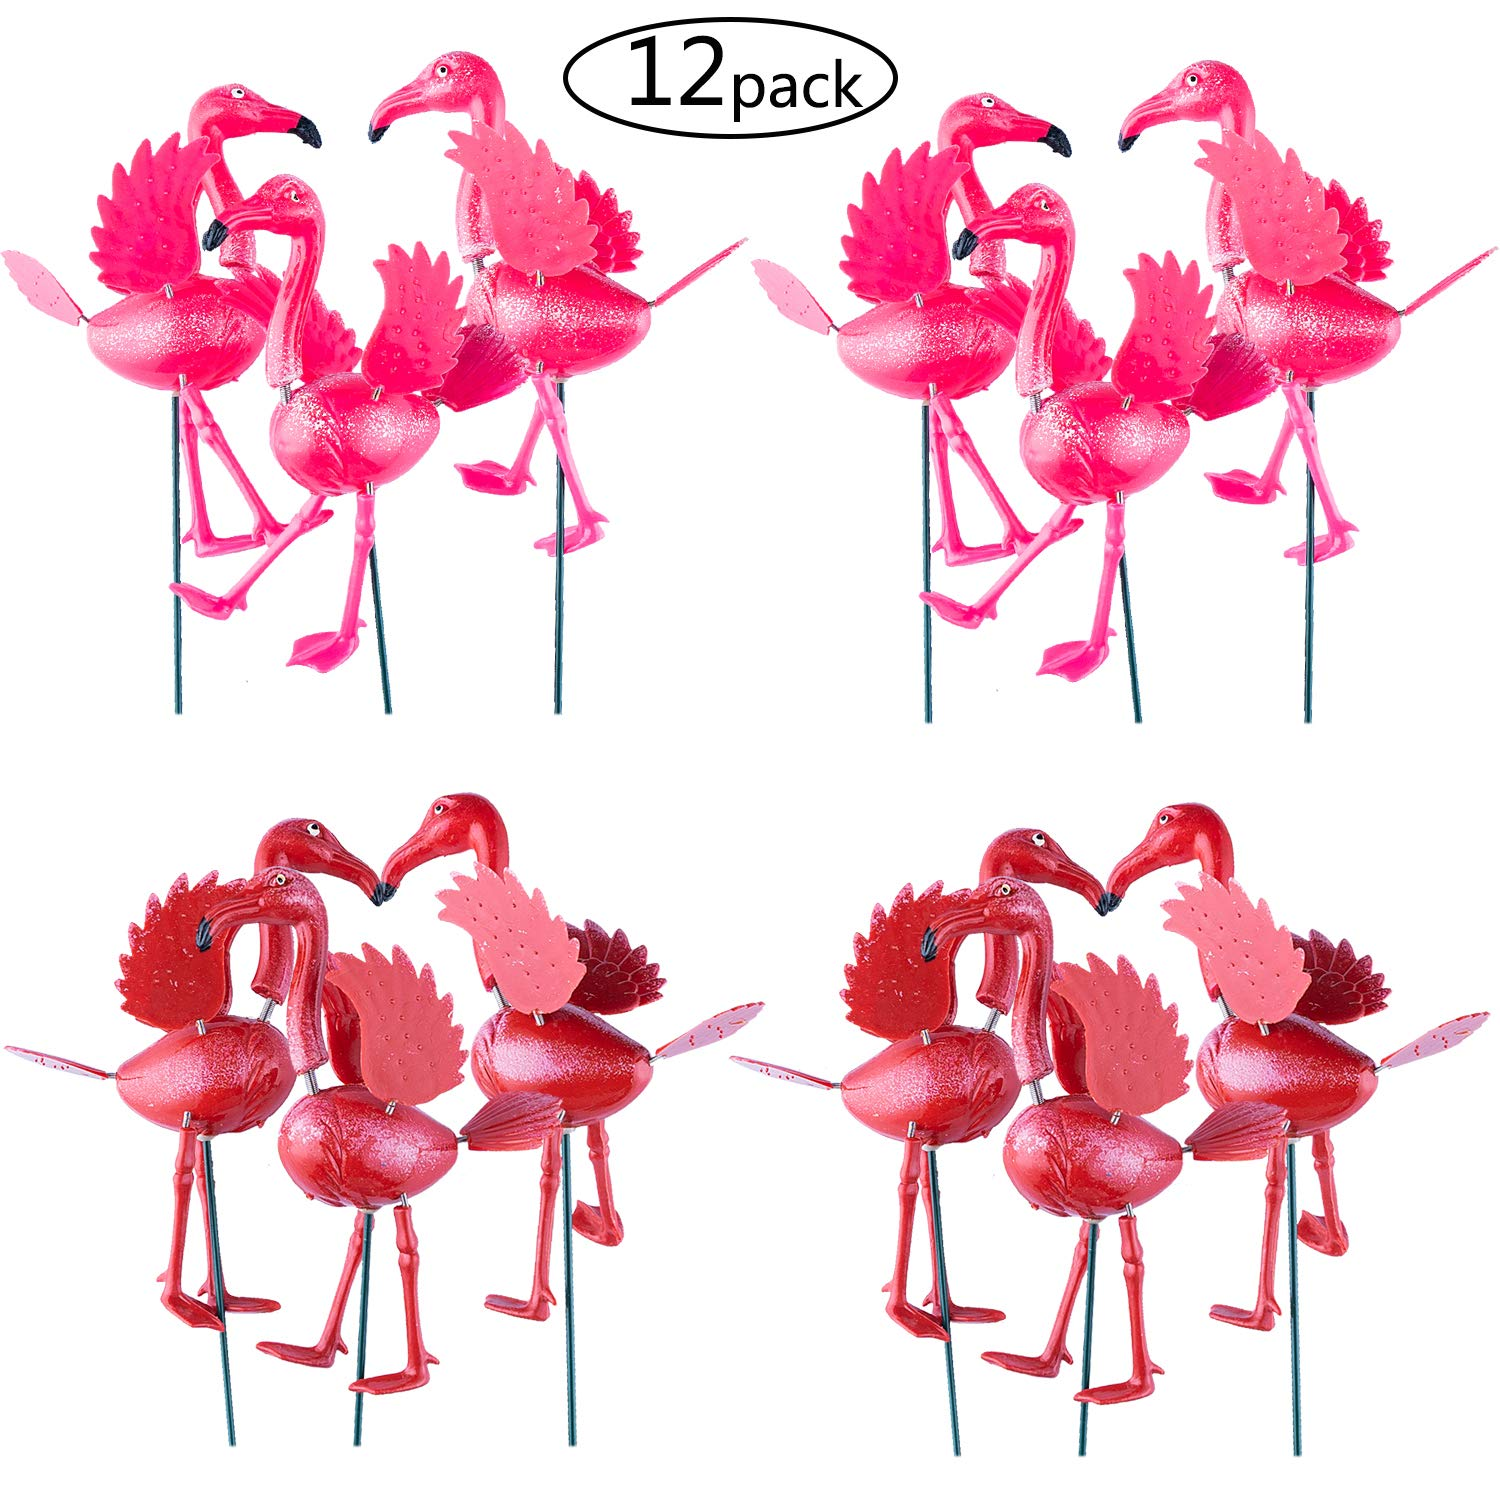 FENDISI Flamingo Garden Stakes Decorations Outdoor Lawn Decorative Yard Decor Patio Accessories Ornaments Plastic Gardening Art Mini Pink Flamingos Christmas Whimsical Gifts (Pack of 12)